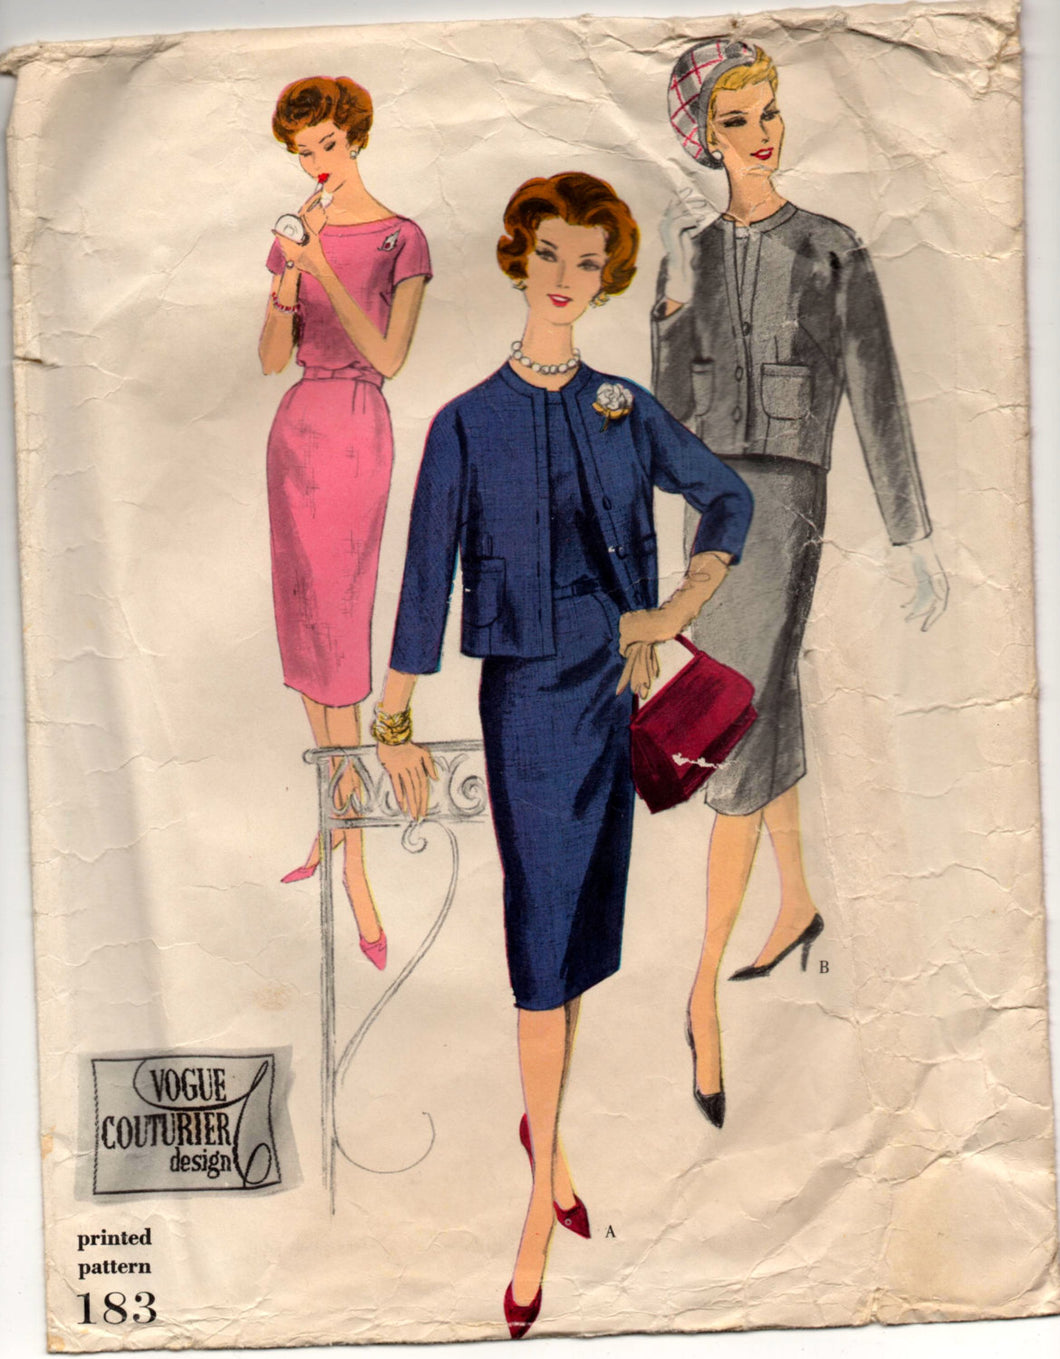 1950's Vogue Couturier Design One-Piece Dress and Jacket Pattern - Bust 36